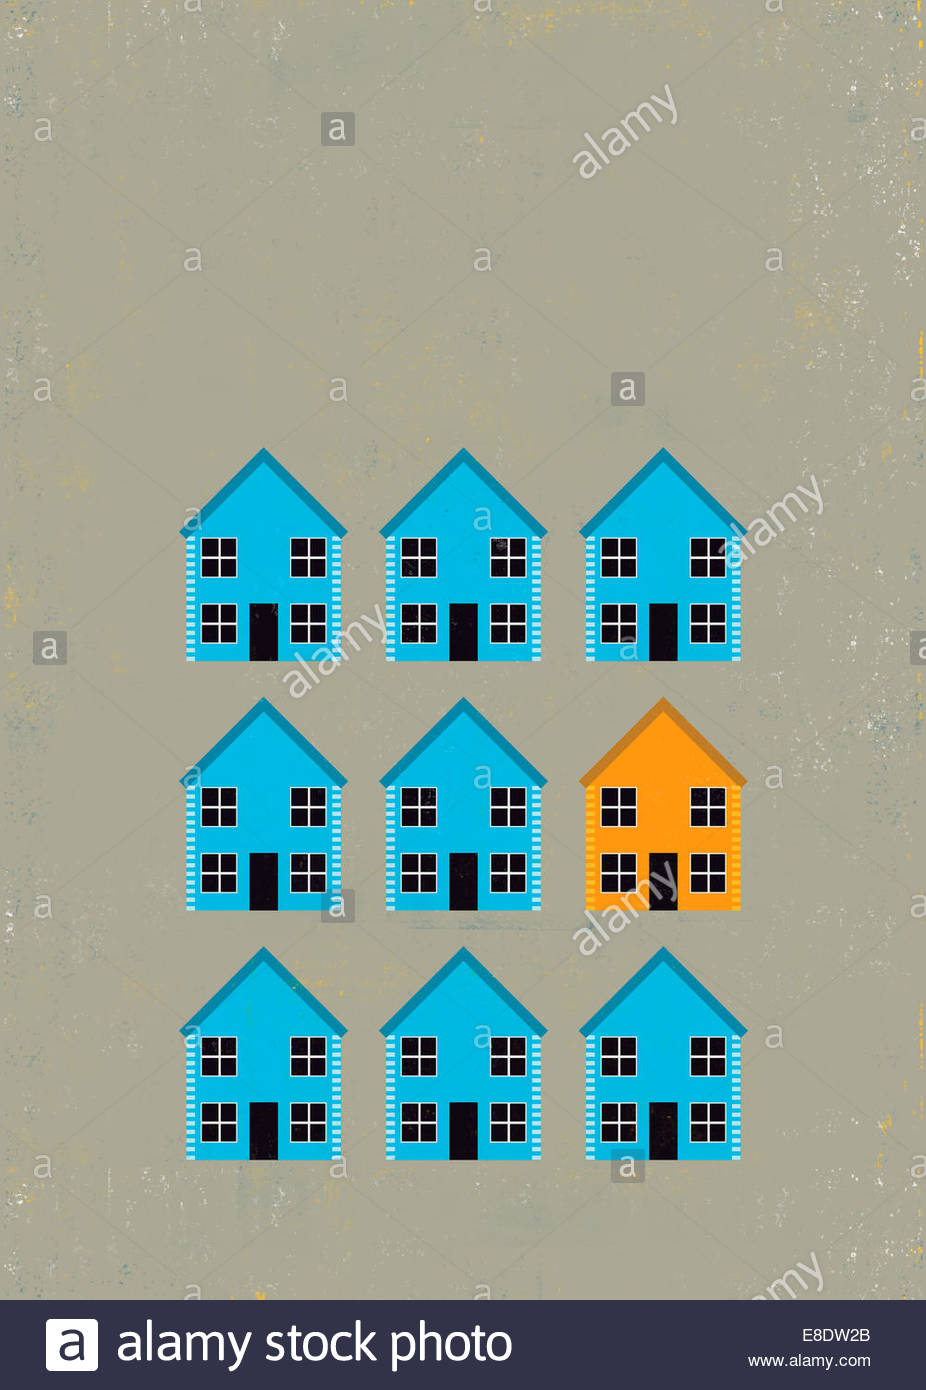 Orange house standing out from crowd of blue houses - Stock Image